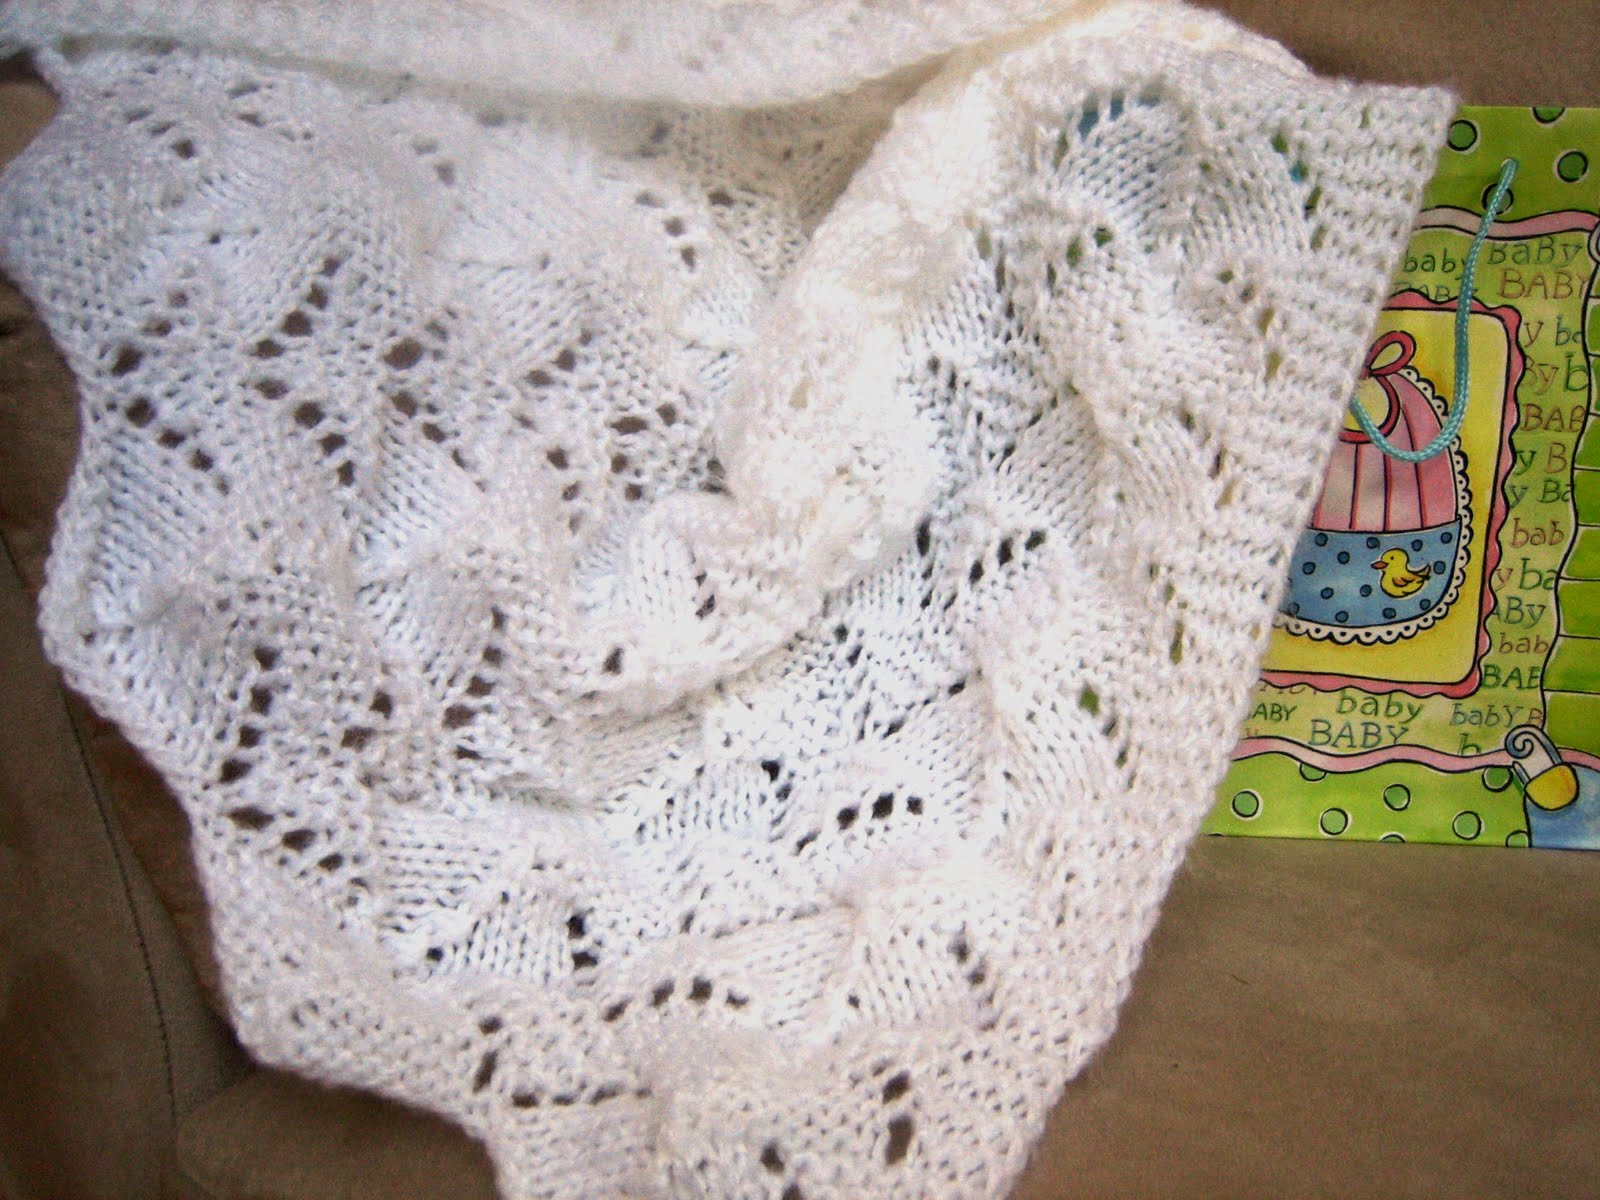 Knitting Pattern For Baby Blanket Beginner : BEGINNER BABY BLANKET PATTERNS   Free Patterns